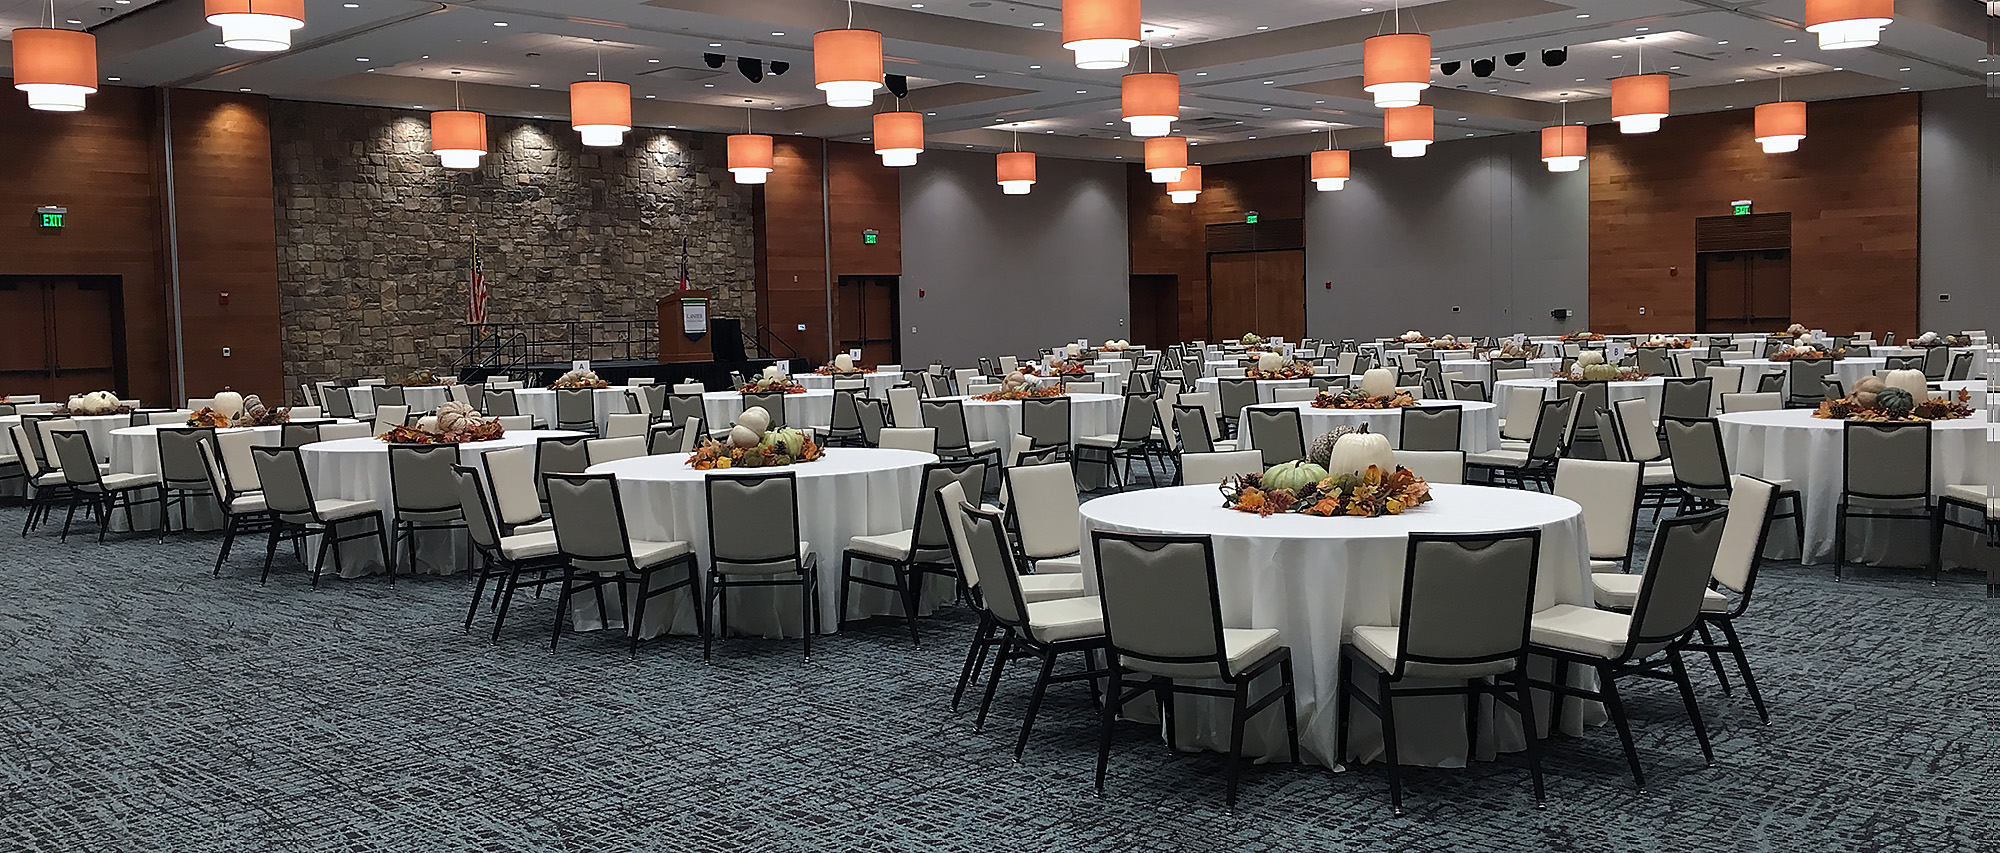 Conference Center setup with fall decor on round tables